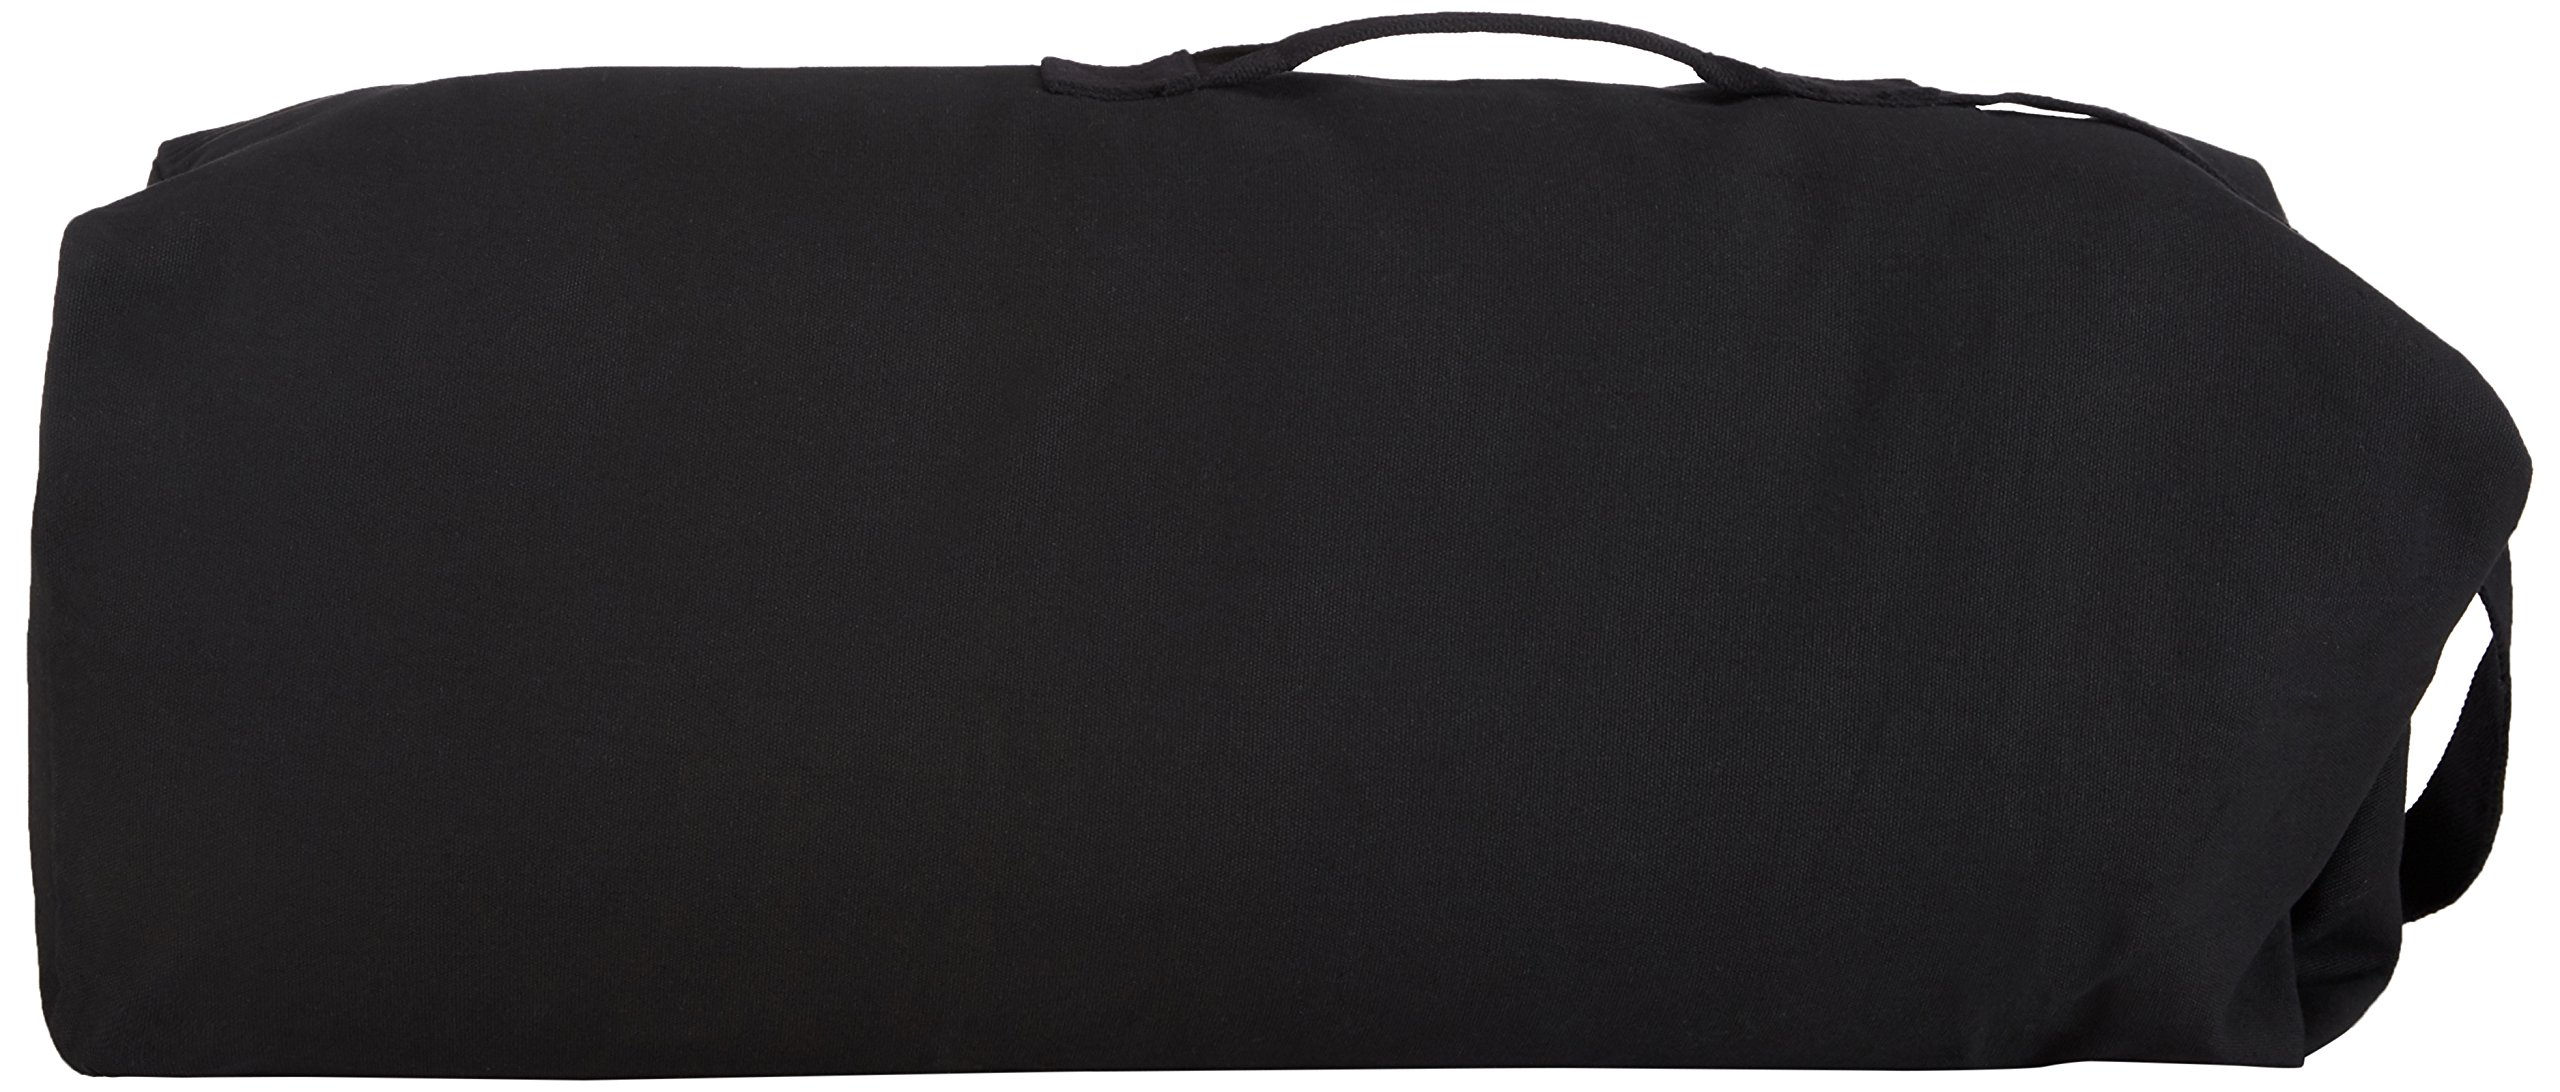 Stansport 1221 Deluxe Duffel Bag with Shoulder Strap, 36'' X 10'' X 10'', Black